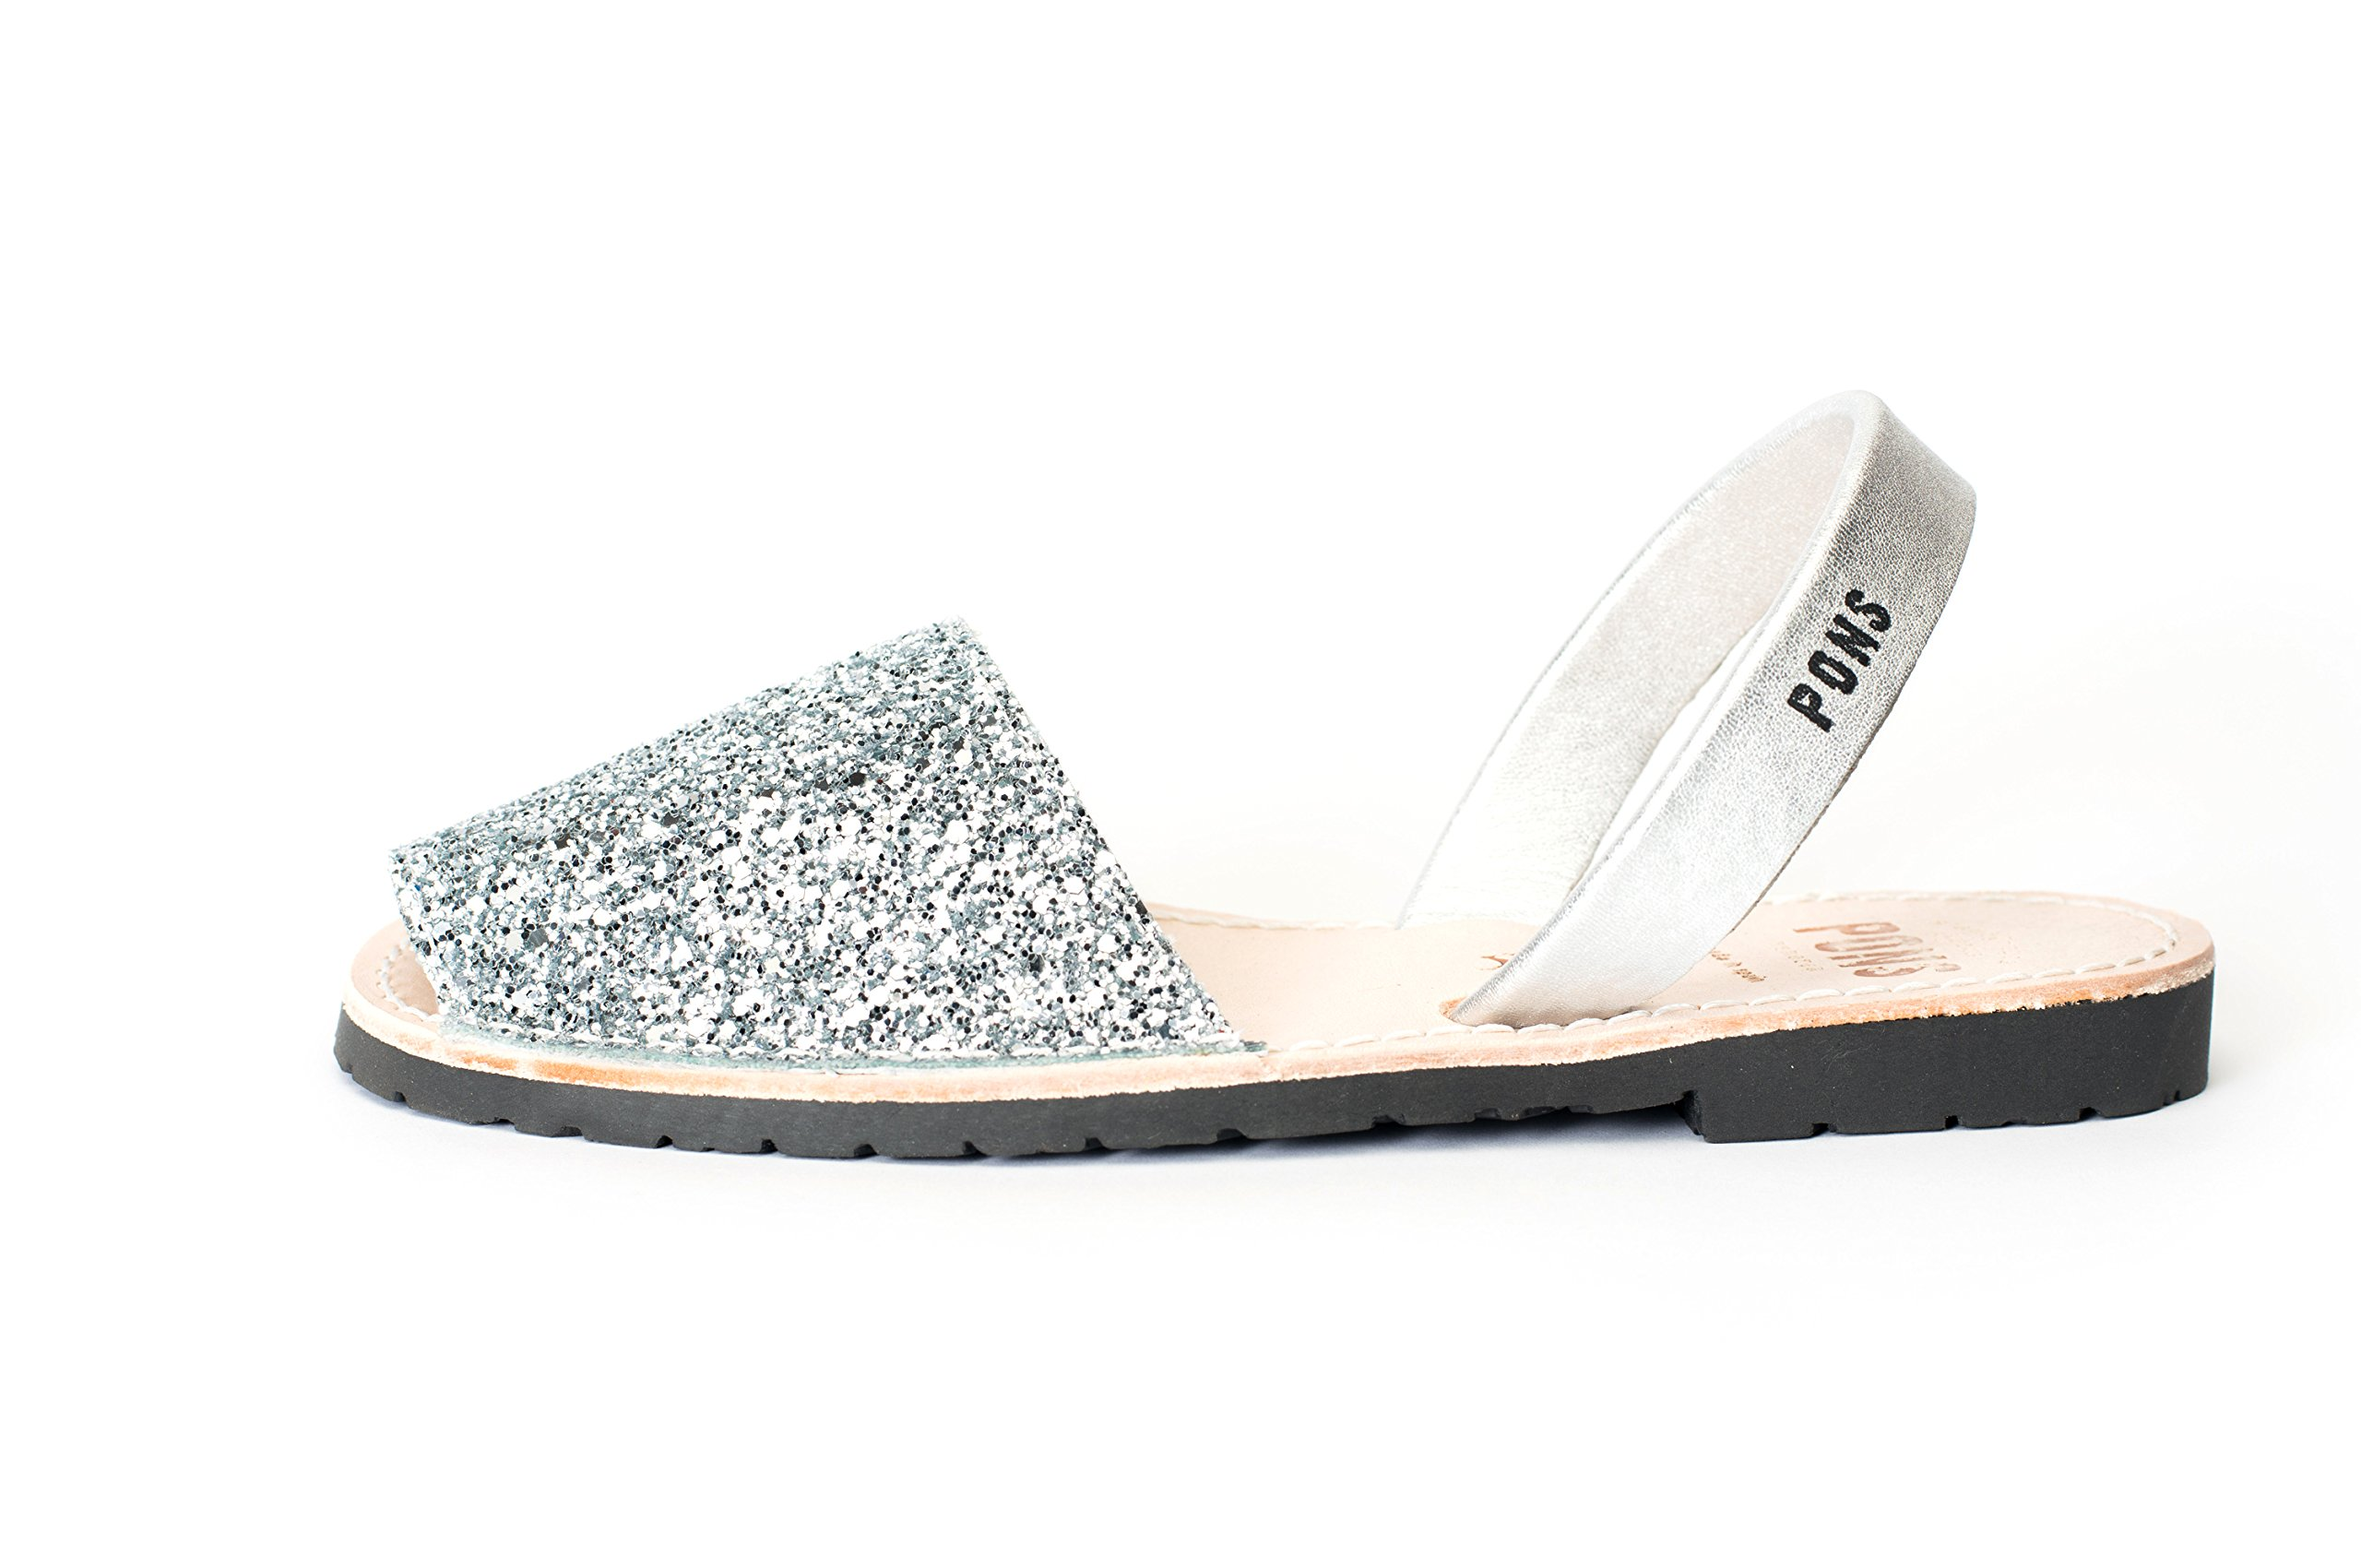 510G - Avarca Pons Classic Style Glitter - Silver - 40 ( US 10 )